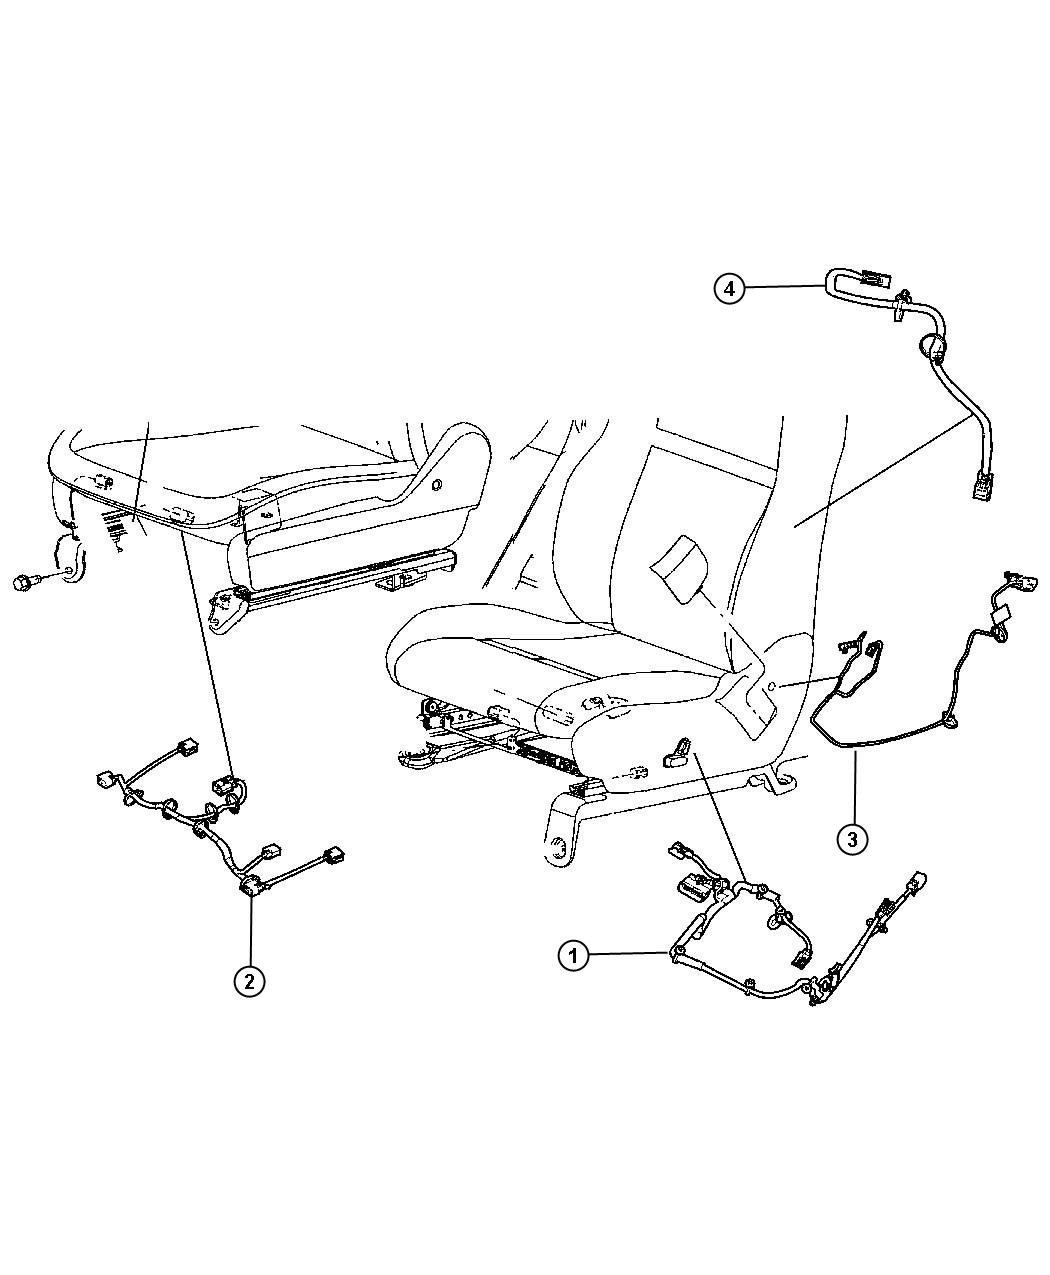 Dodge Grand Caravan Wiring. Power seat, seat. Trim: [lux